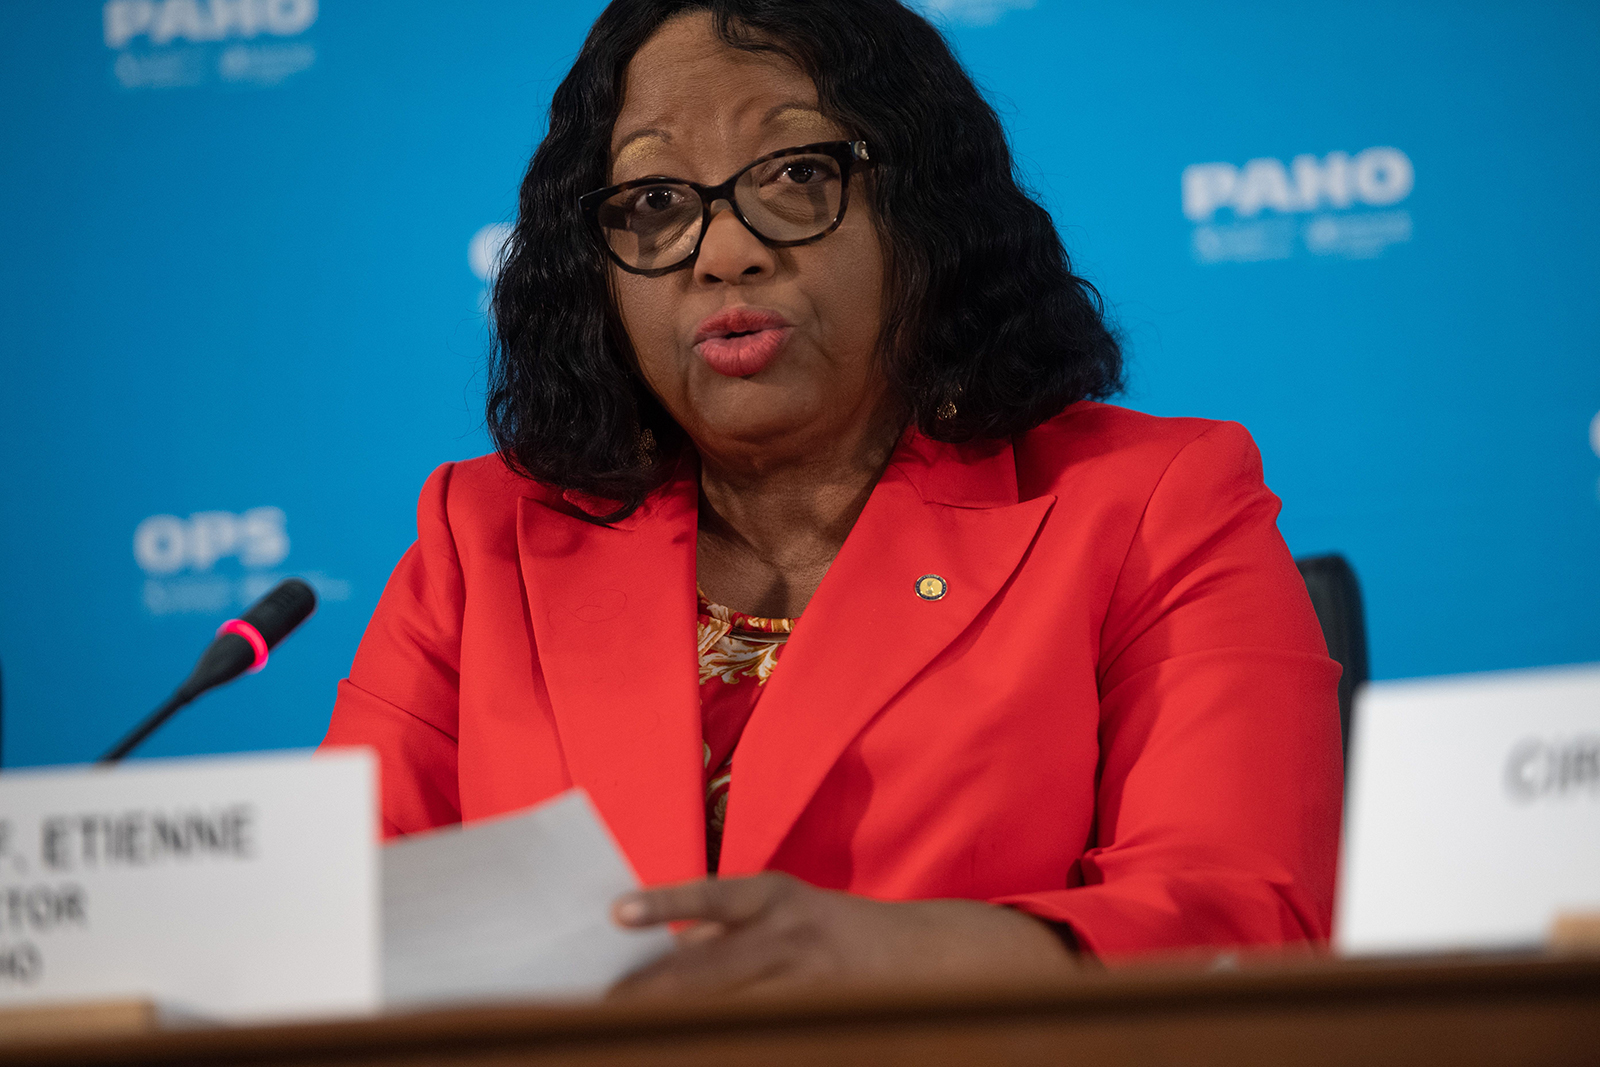 Dr. Carissa Etienne, Director of the Pan American Health Organization (PAHO) and World Health Organization (WHO) Regional Director for the Americas, speaks during a press briefing at PAHO Headquarters in Washington, DC, on March 6.